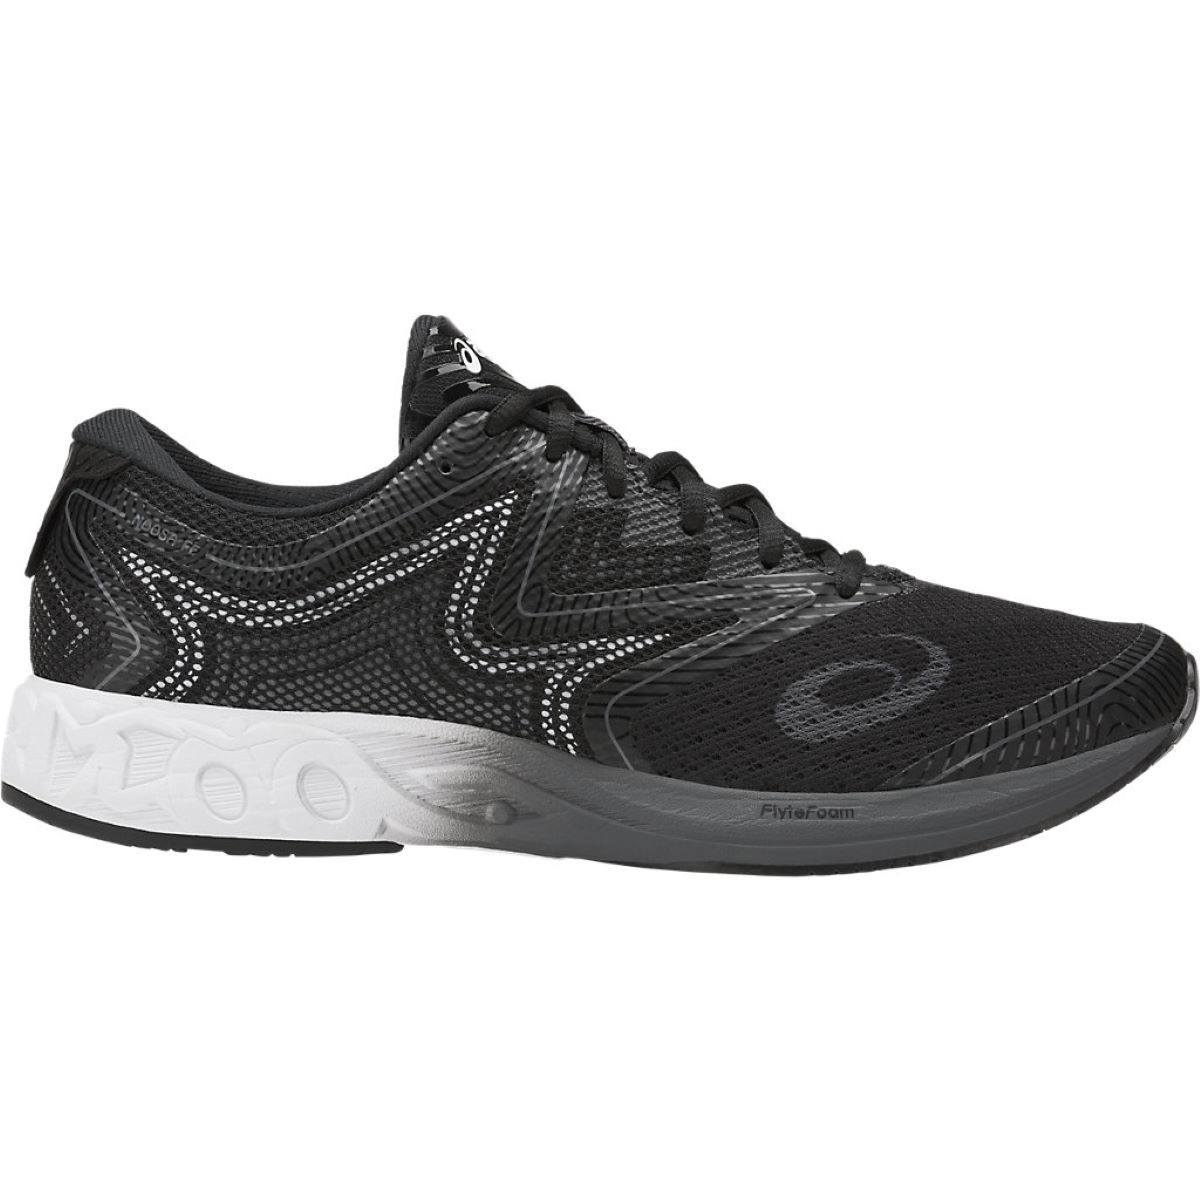 Chaussures Asics Gel-Noosa FF - UK 7 Black/White/Carbon